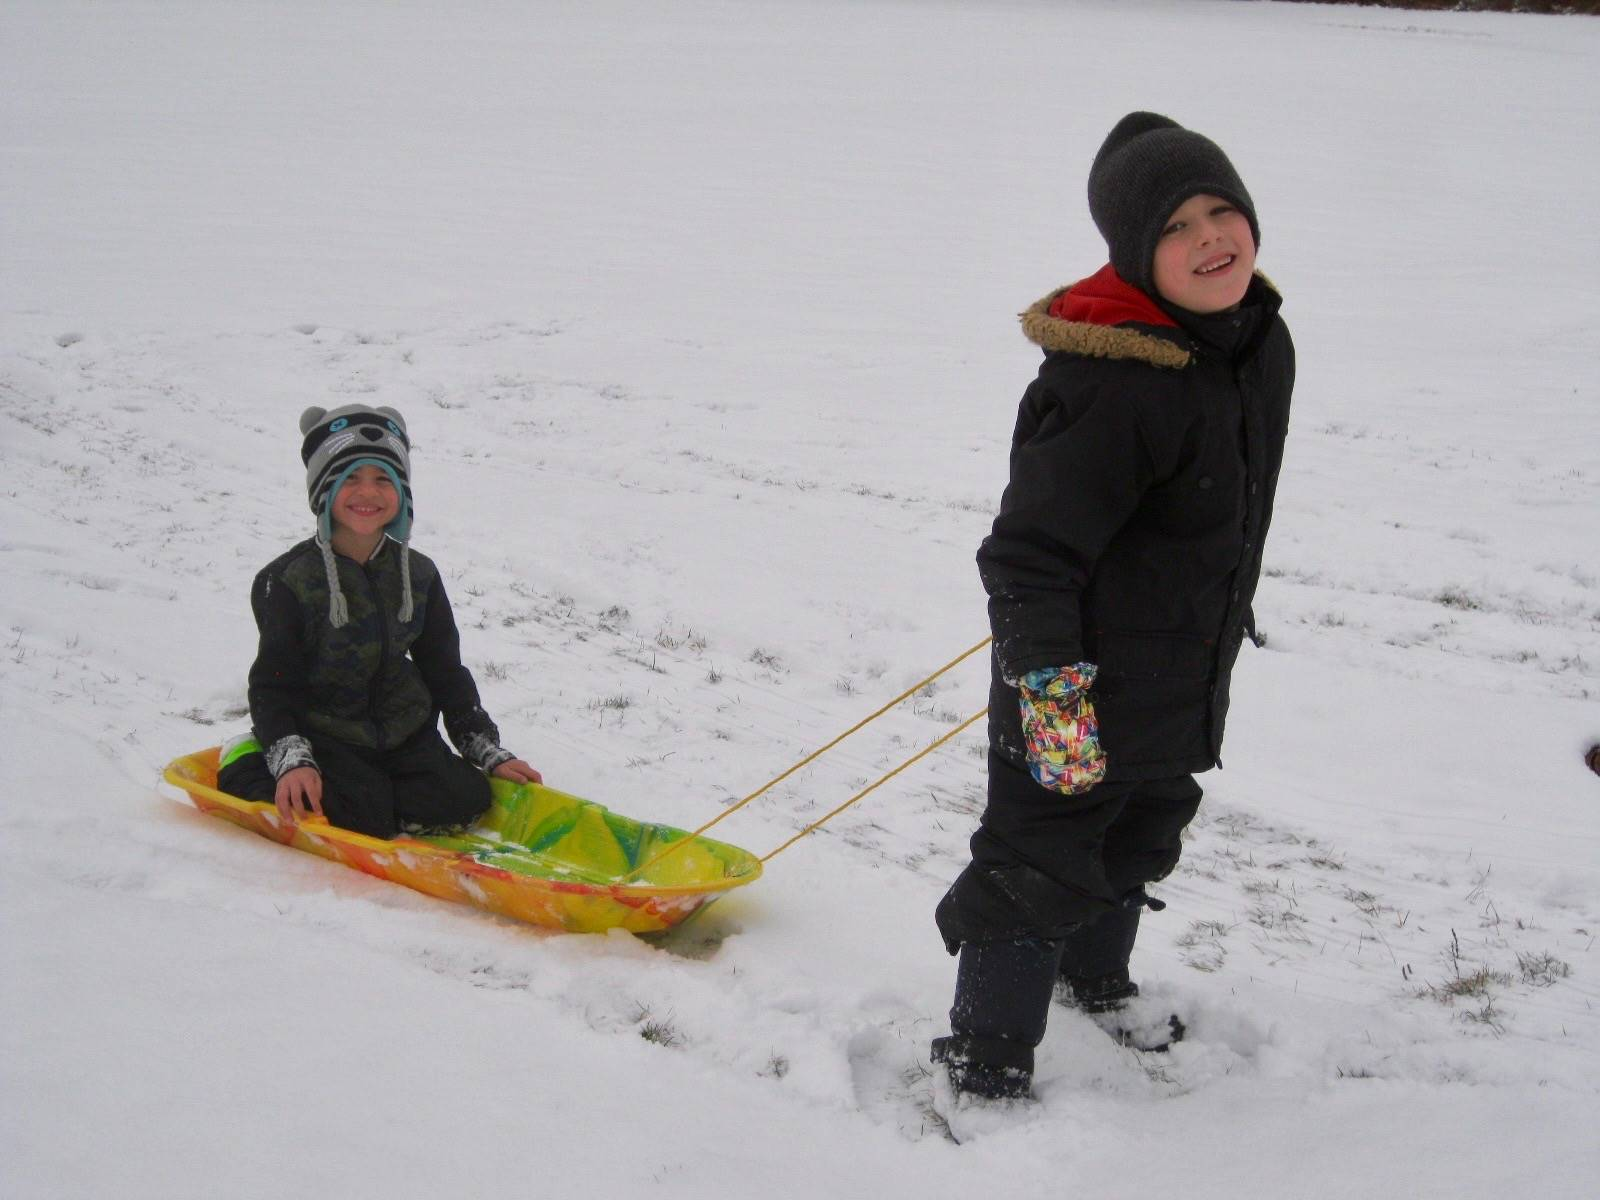 A student pulling another student on sled.